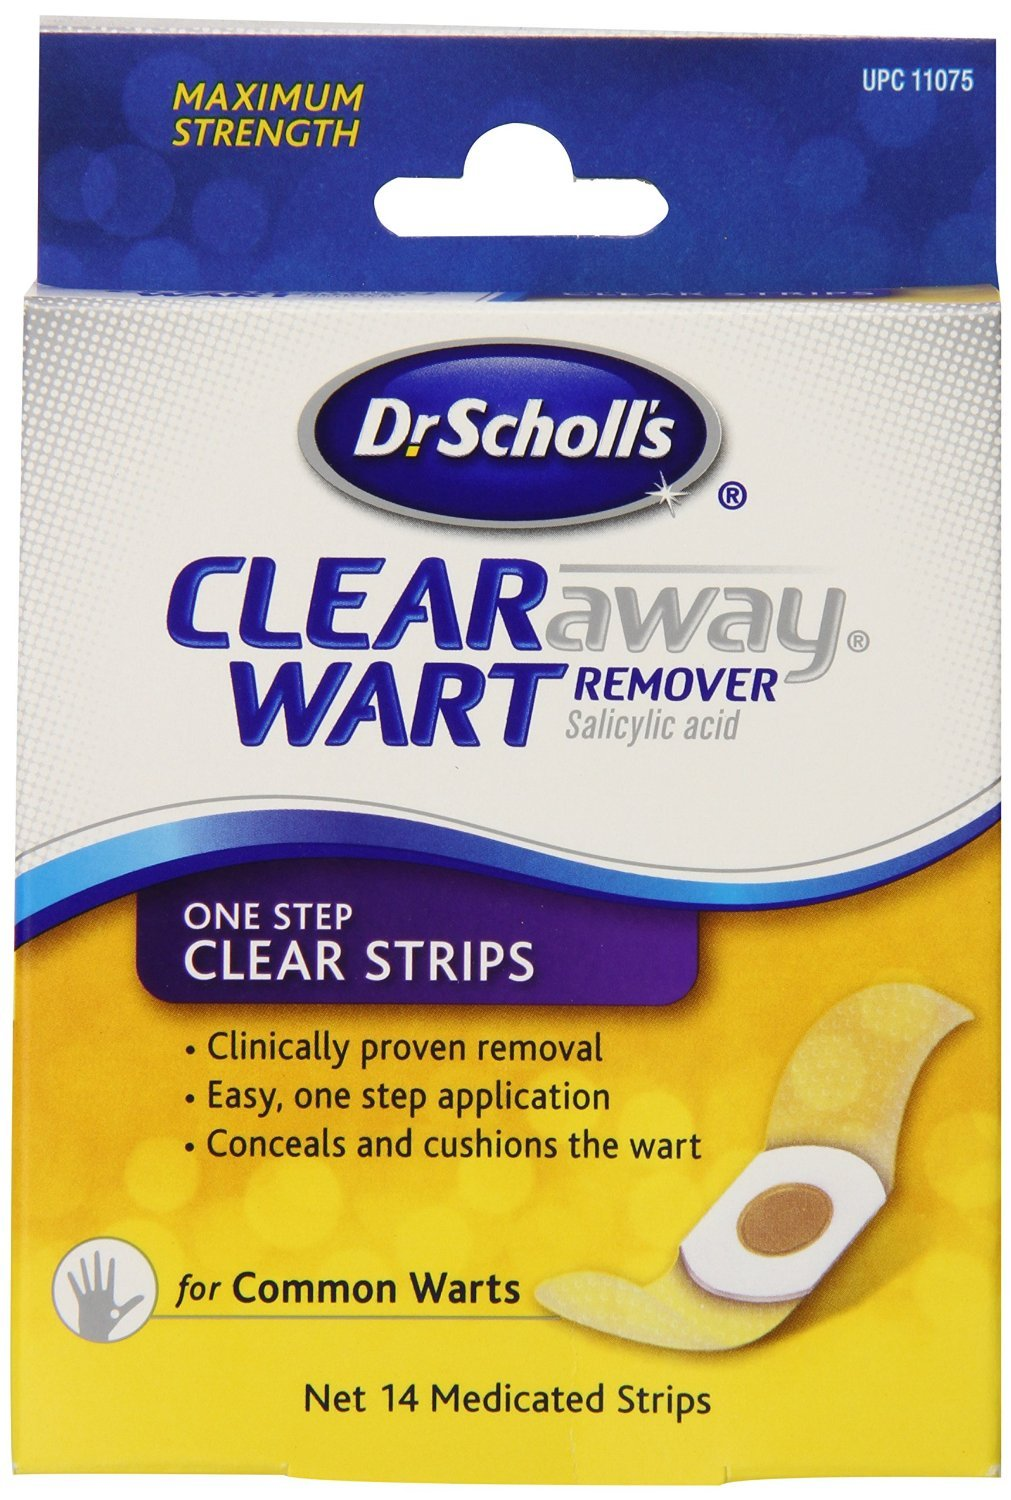 Dr Scholls, Clear Away One Step Salicylic Acid Plantar Acid Wart Remover pads - 14 Strips SCHERING-PLOUGH HEALTHCARE